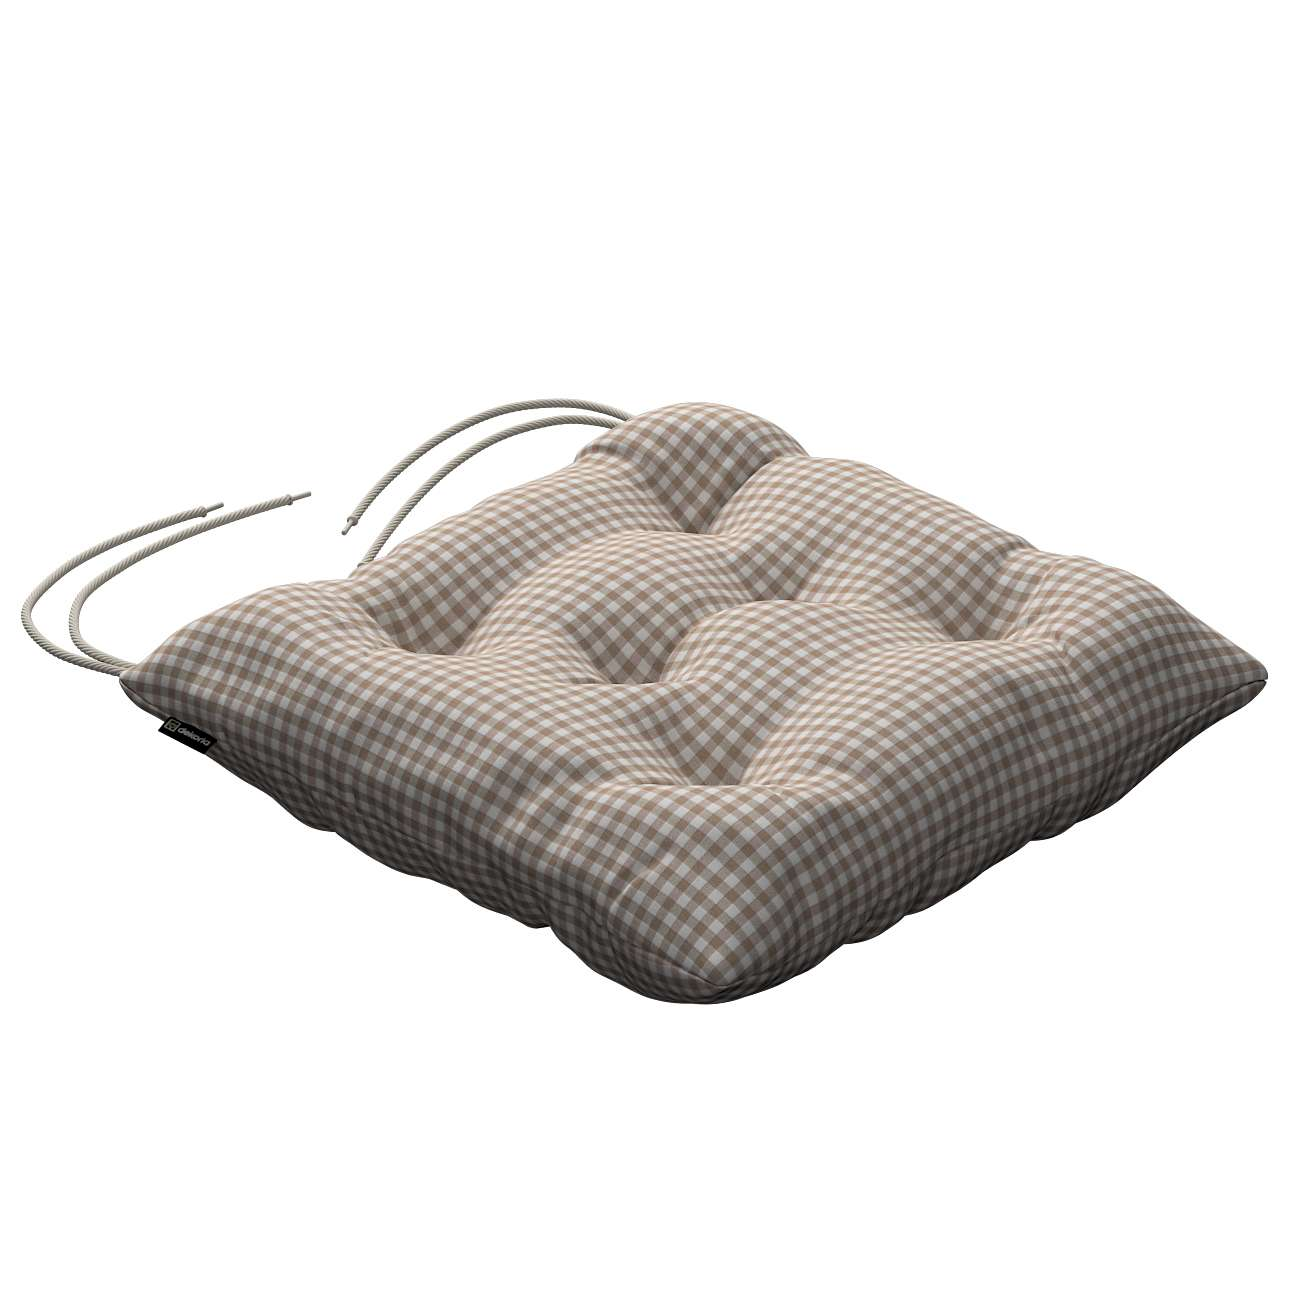 Jack seat pad with ties in collection Quadro, fabric: 136-05